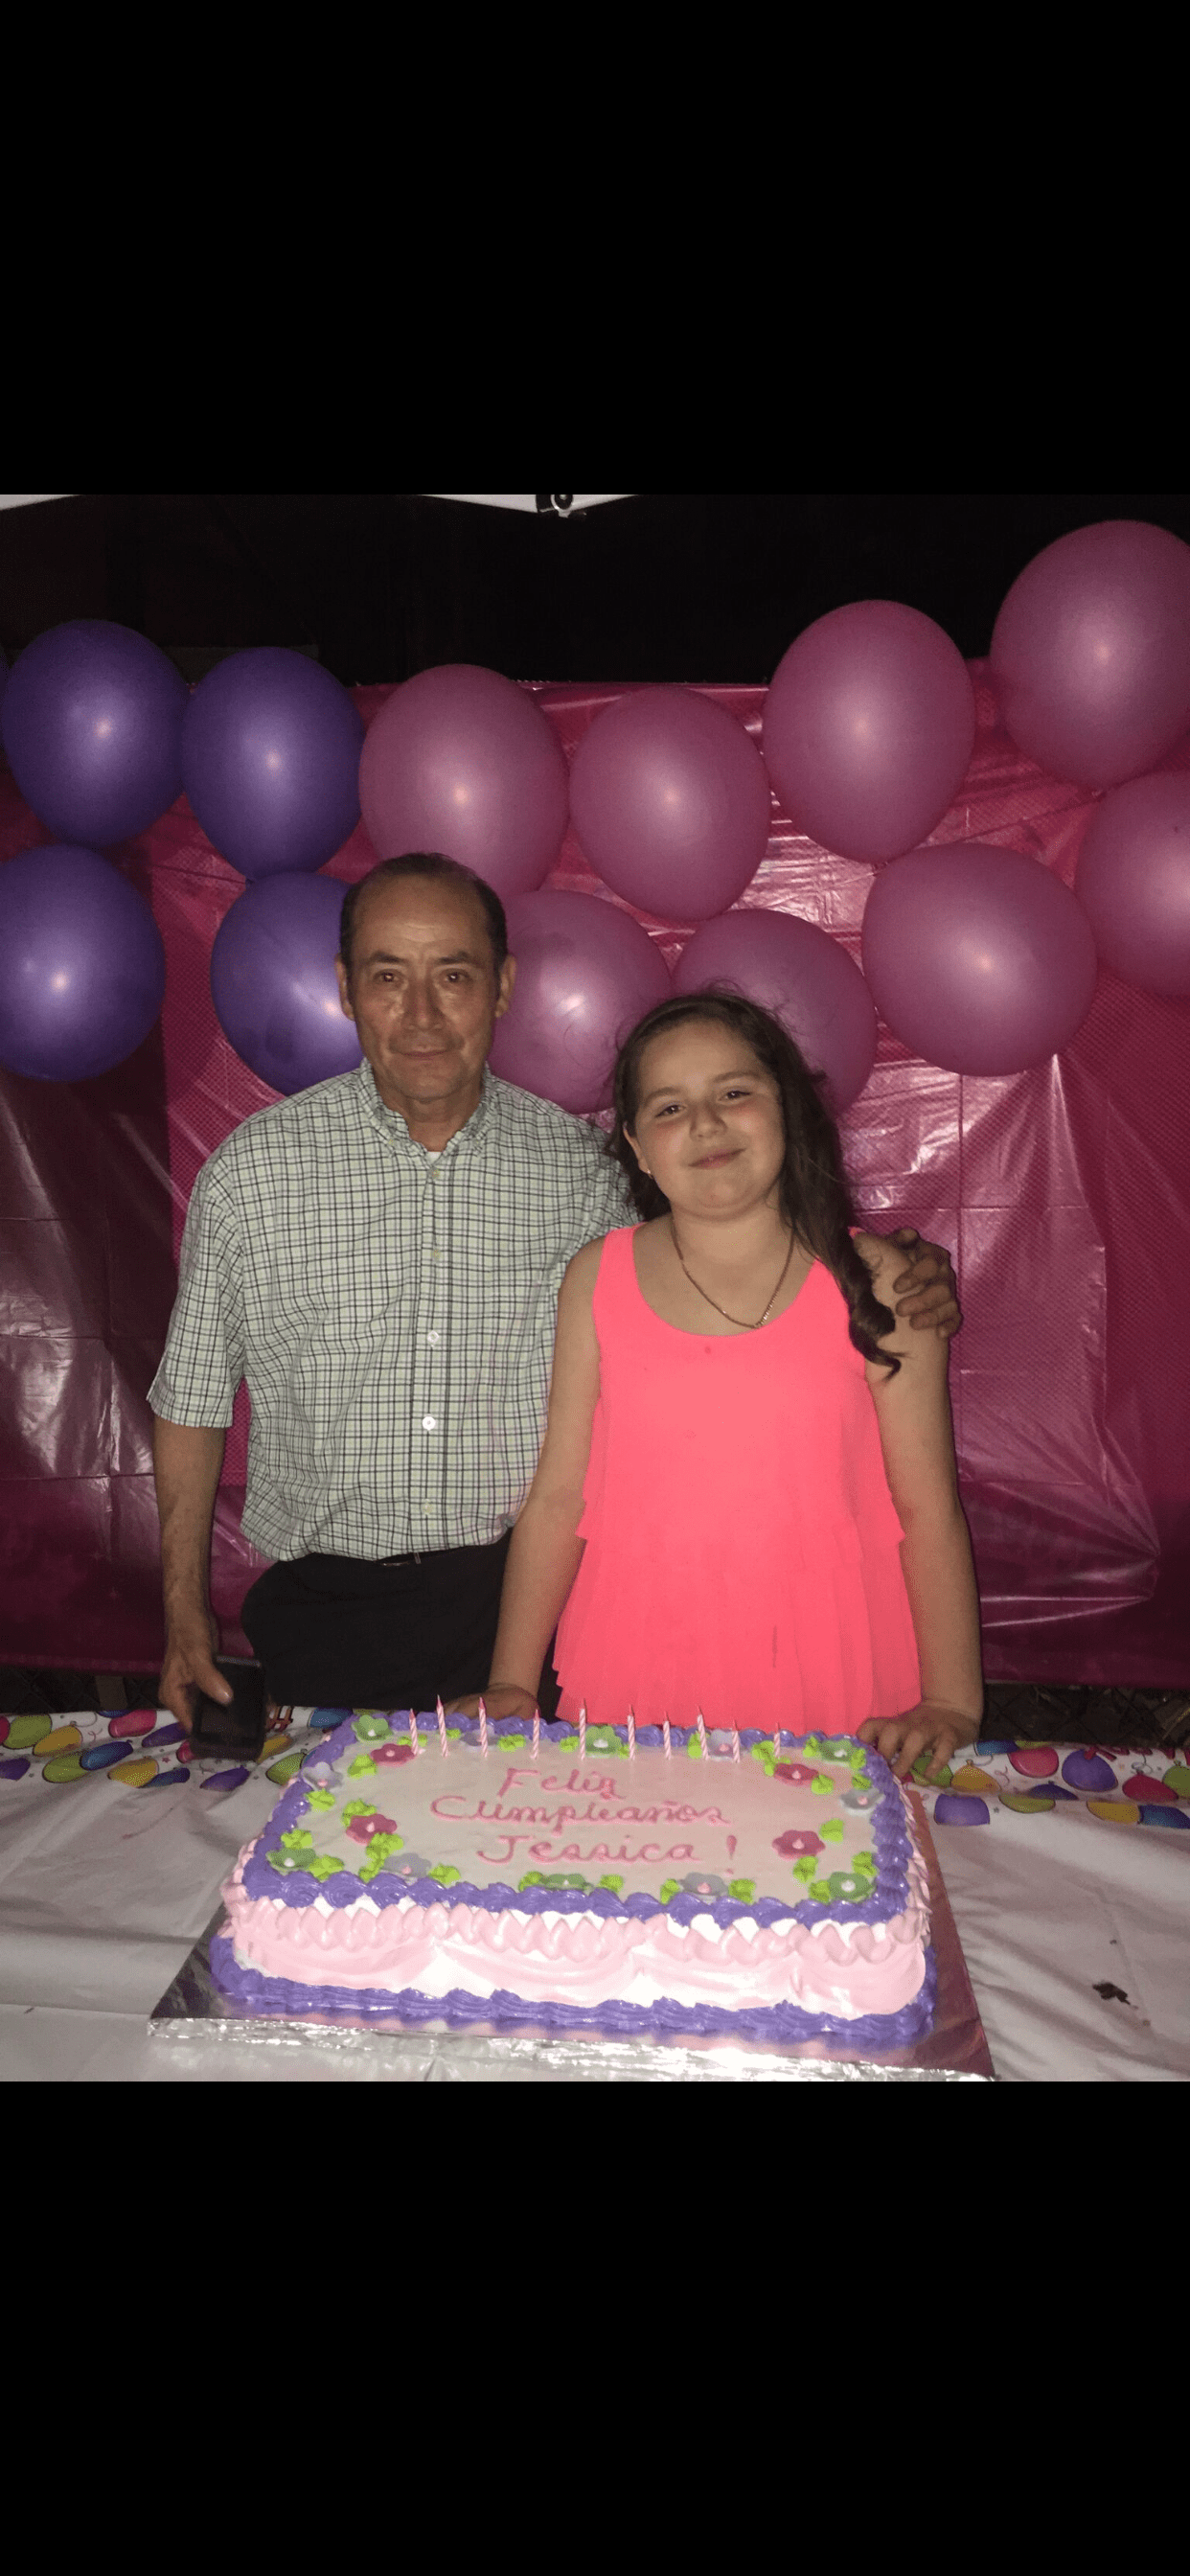 Photo of the author and her grandfather standing in front of her birthday cake. Photo courtesy of the author.